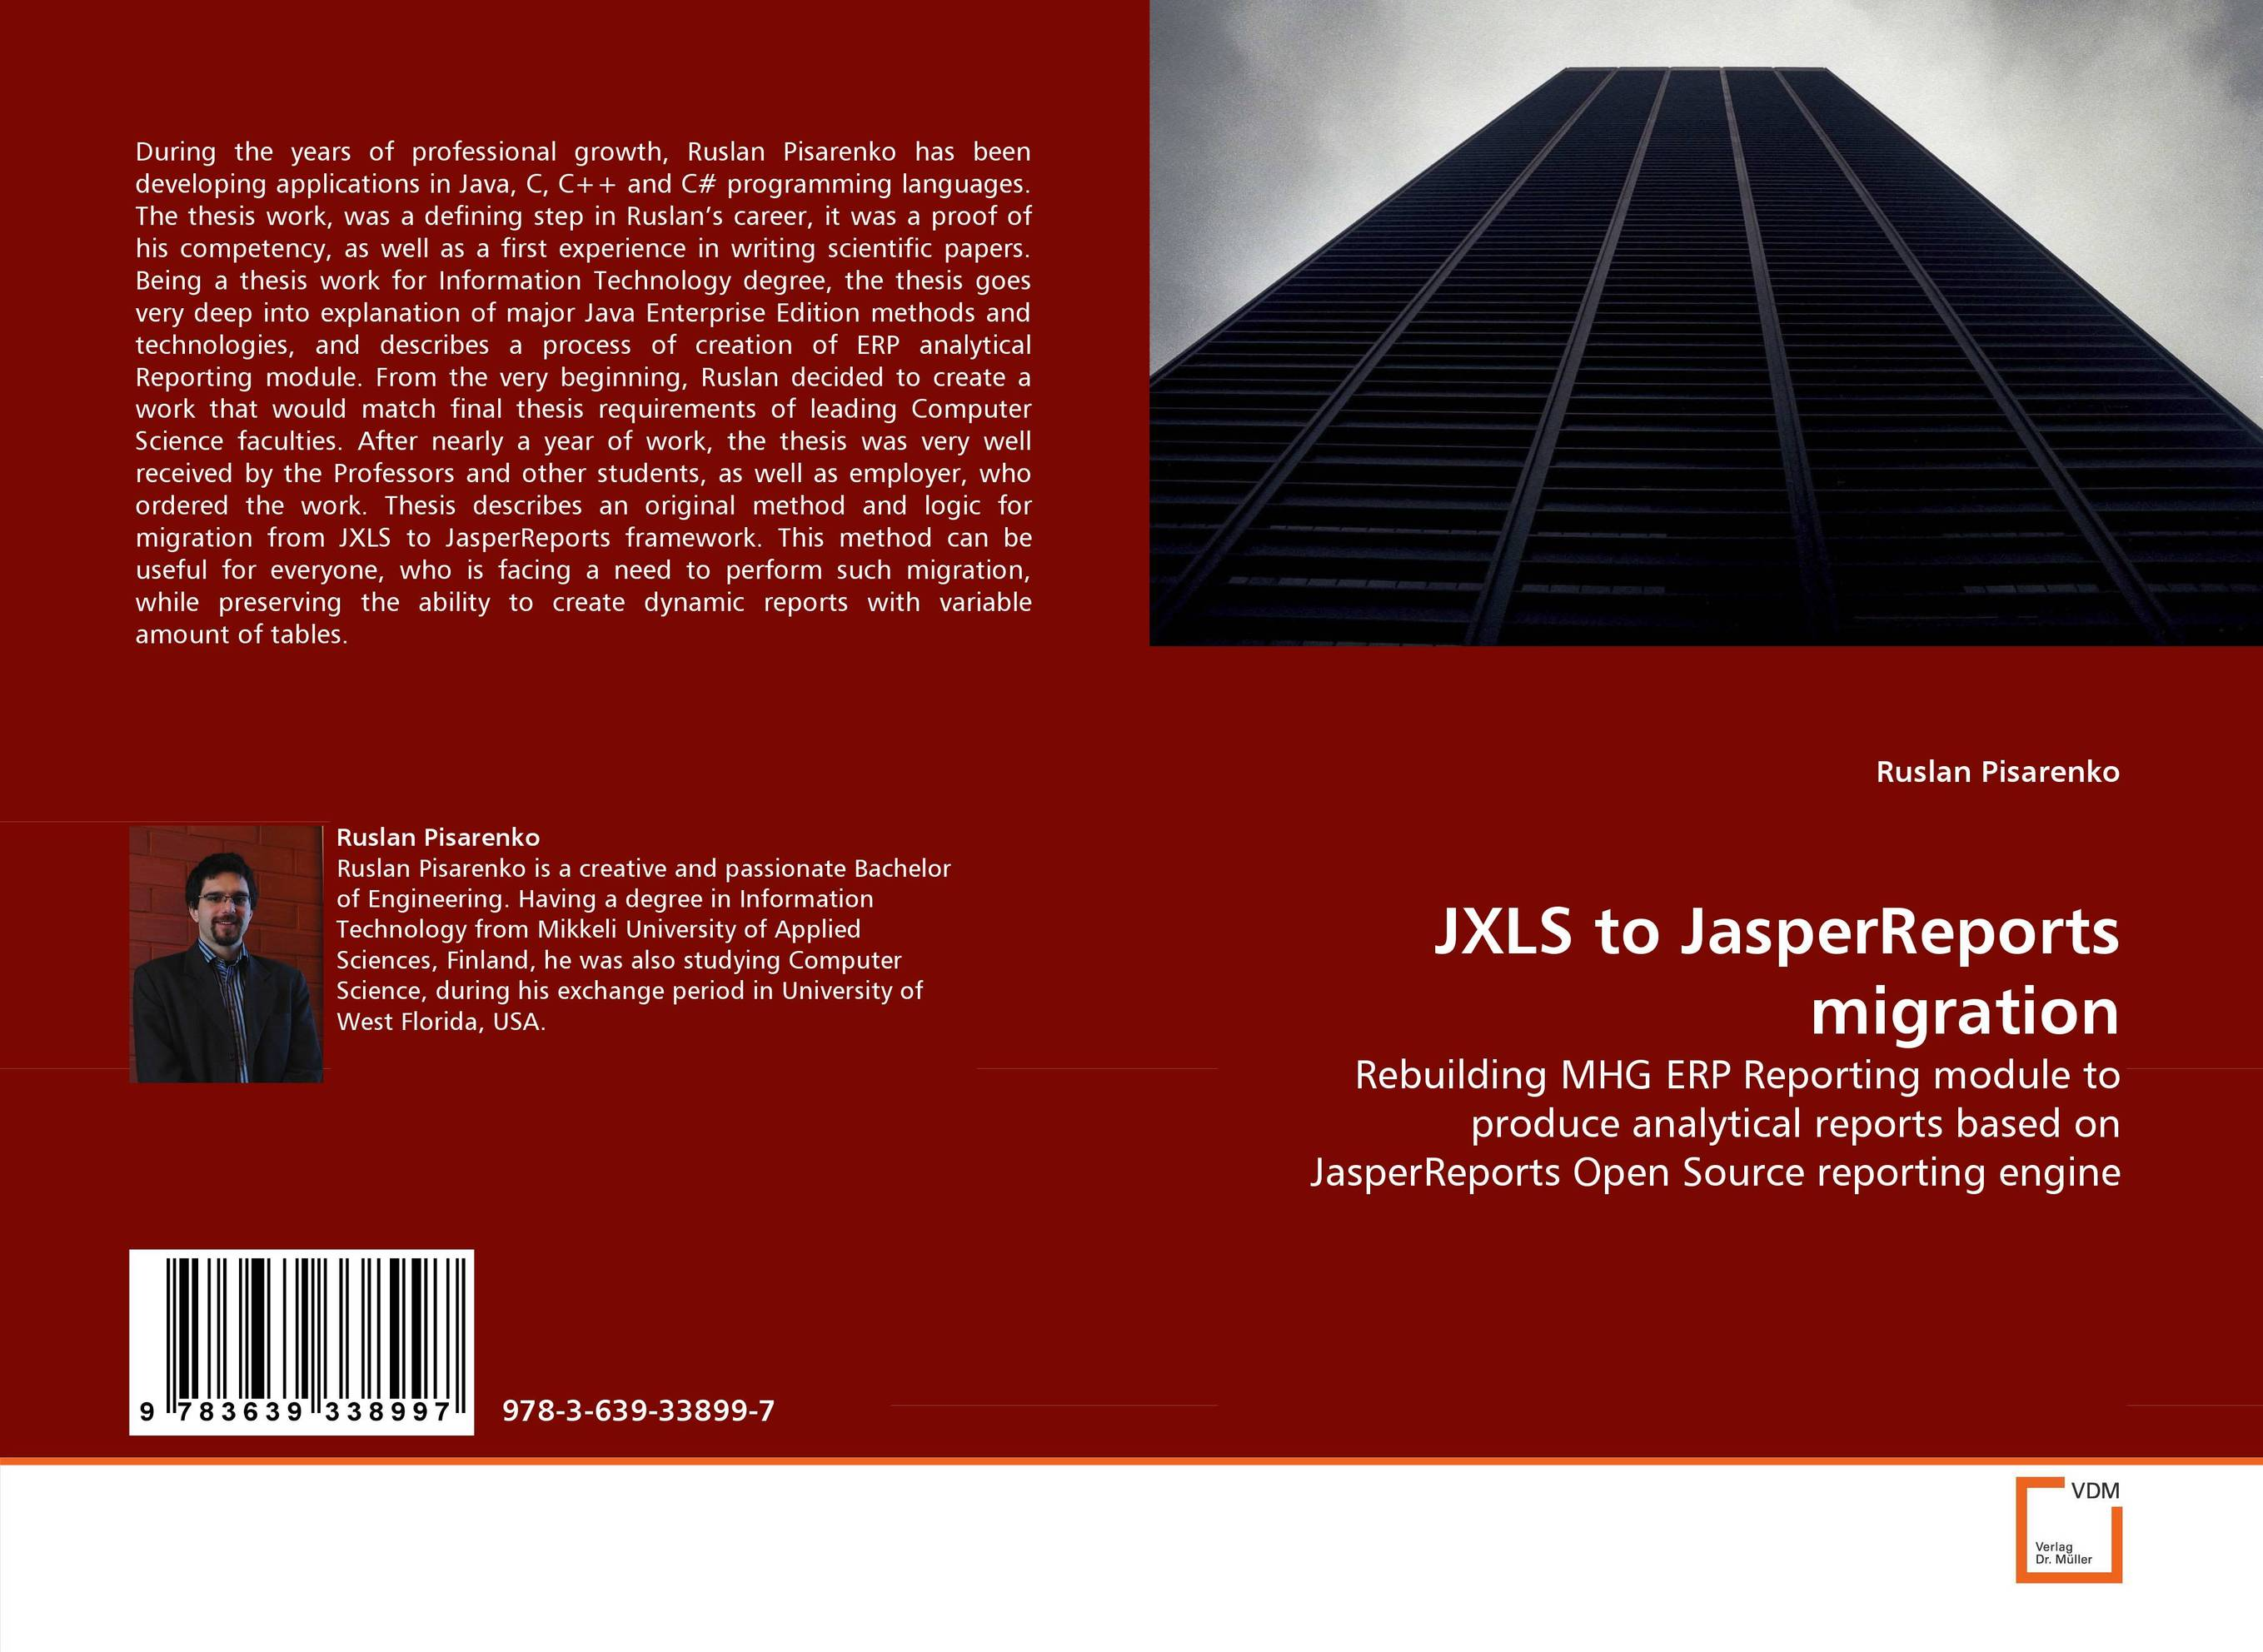 JXLS to JasperReports migration point systems migration policy and international students flow